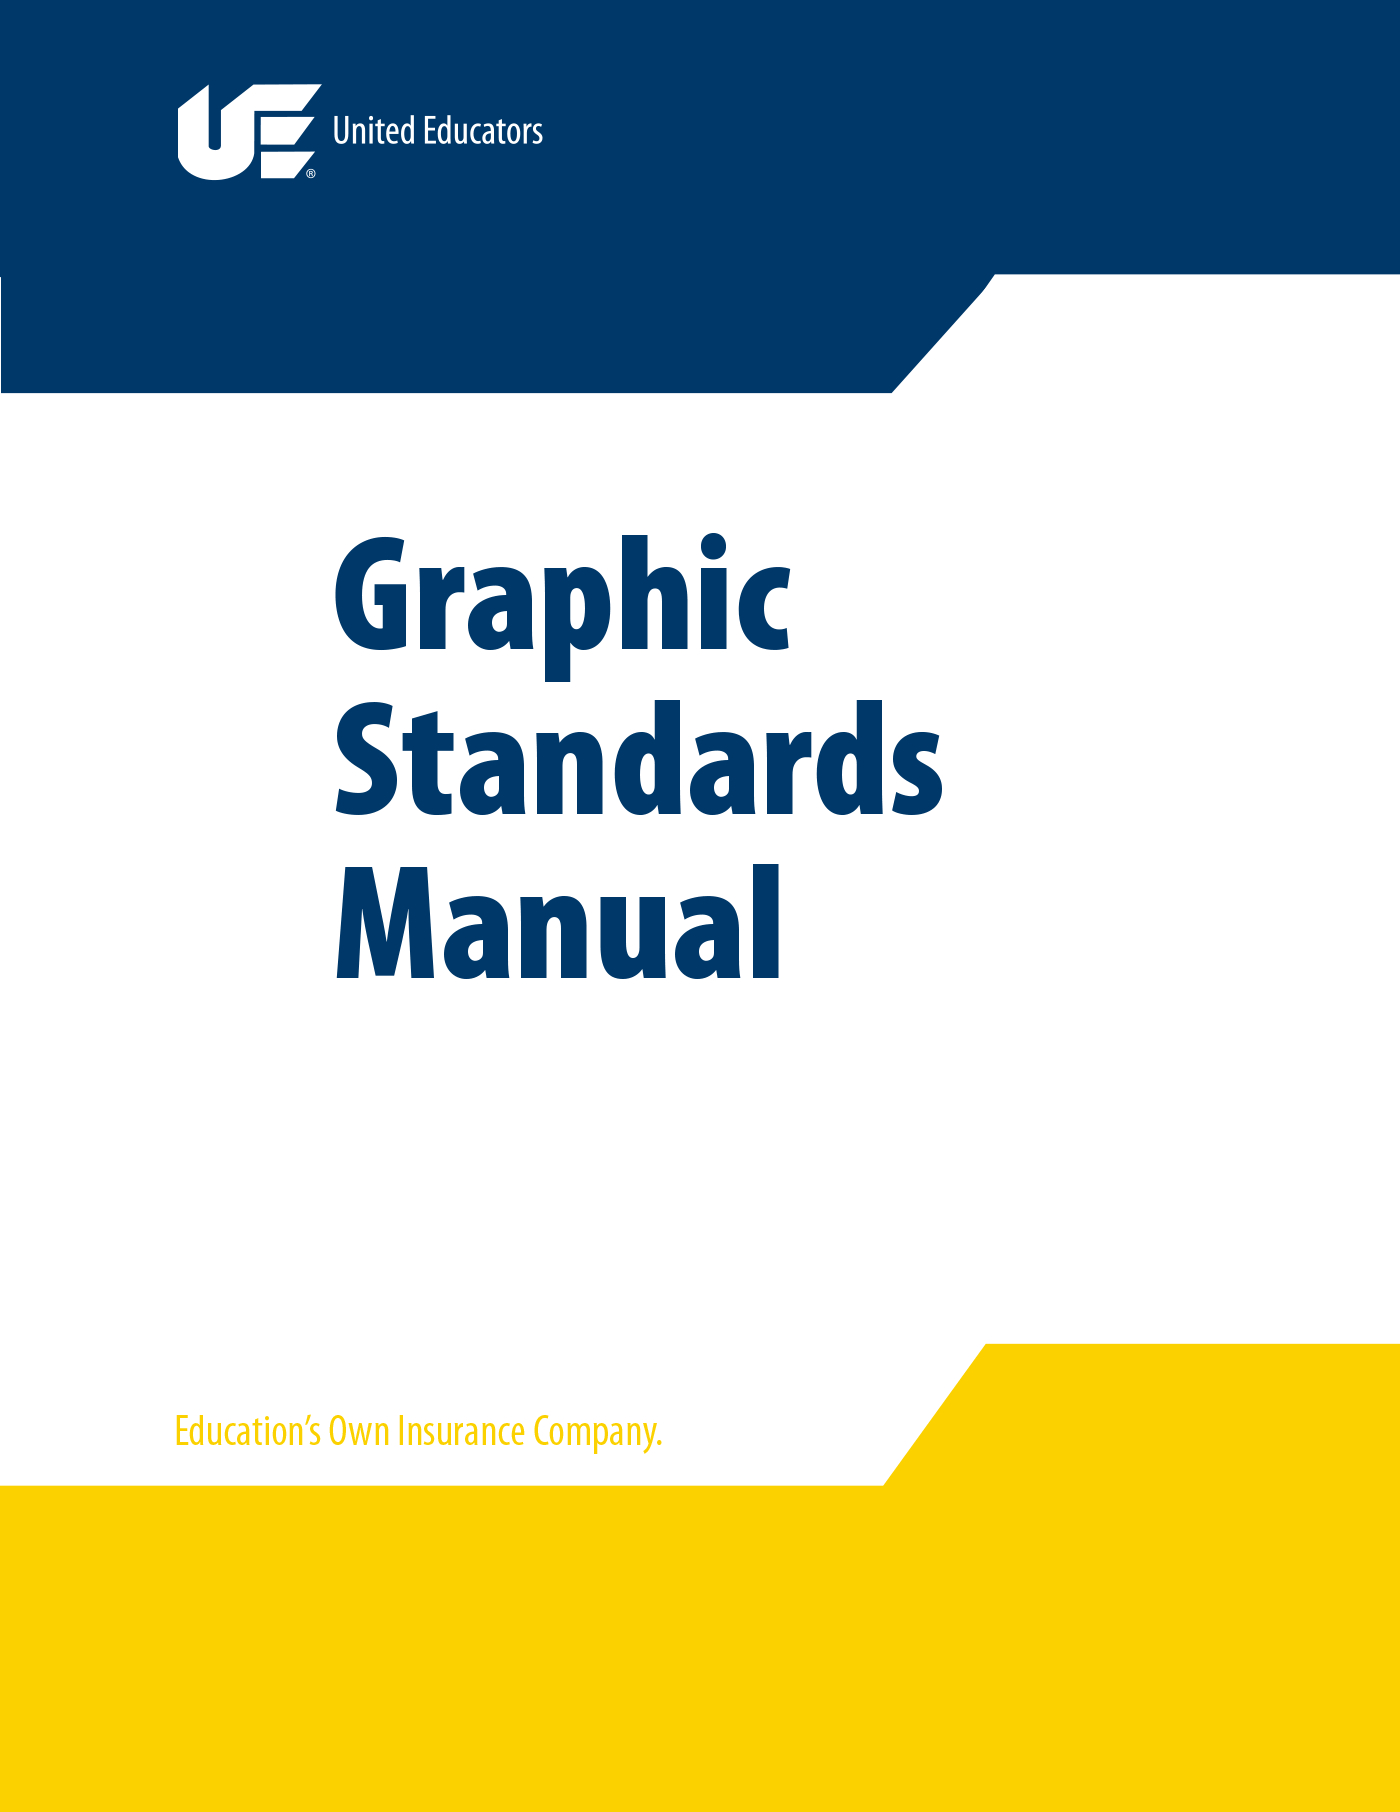 UE Graphic Standards Manual